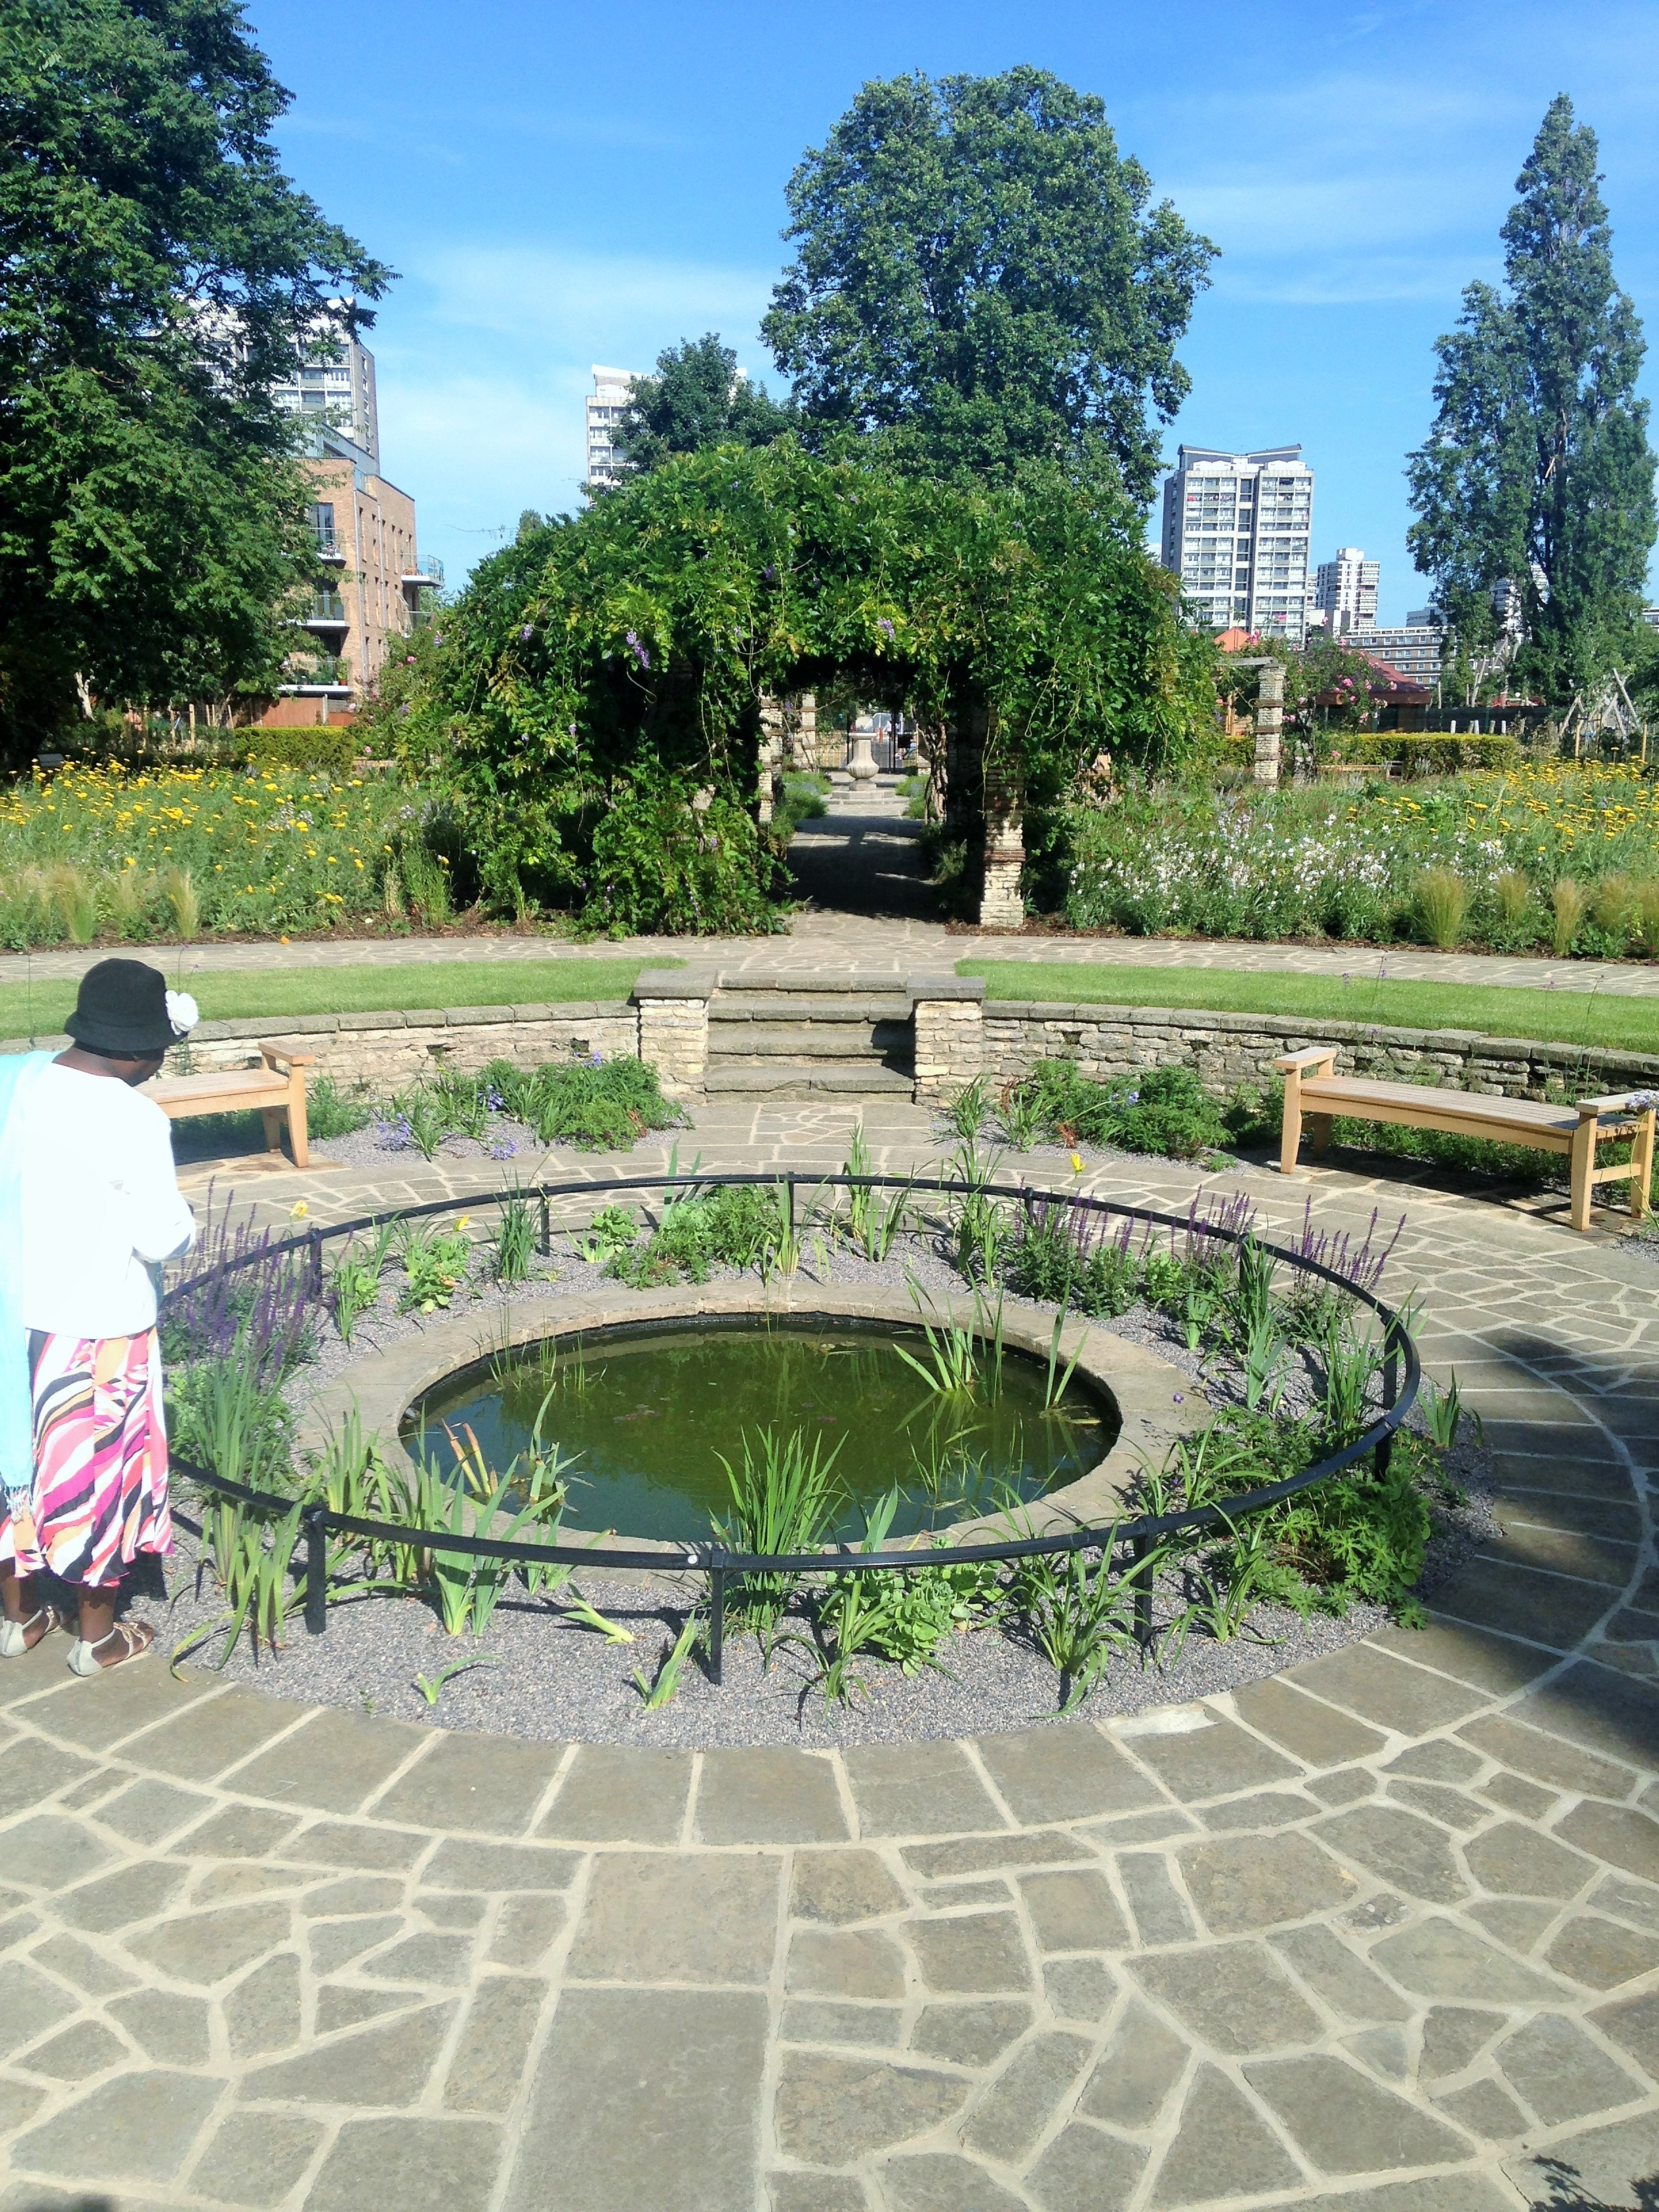 Kennington Park Flower Garden water feature - kenningtonrunoff.com